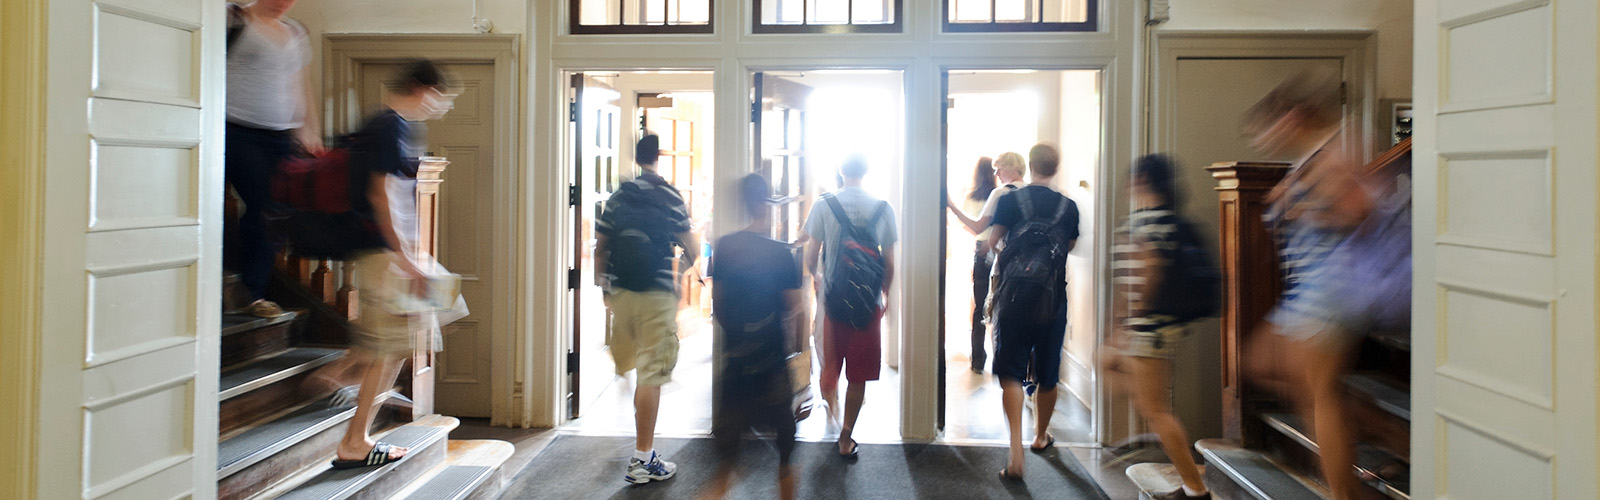 Students make their way through the front doors of Bascom Hall on the first class day of the new academic year at the University of Wisconsin-Madison on Sept. 2, 2011.